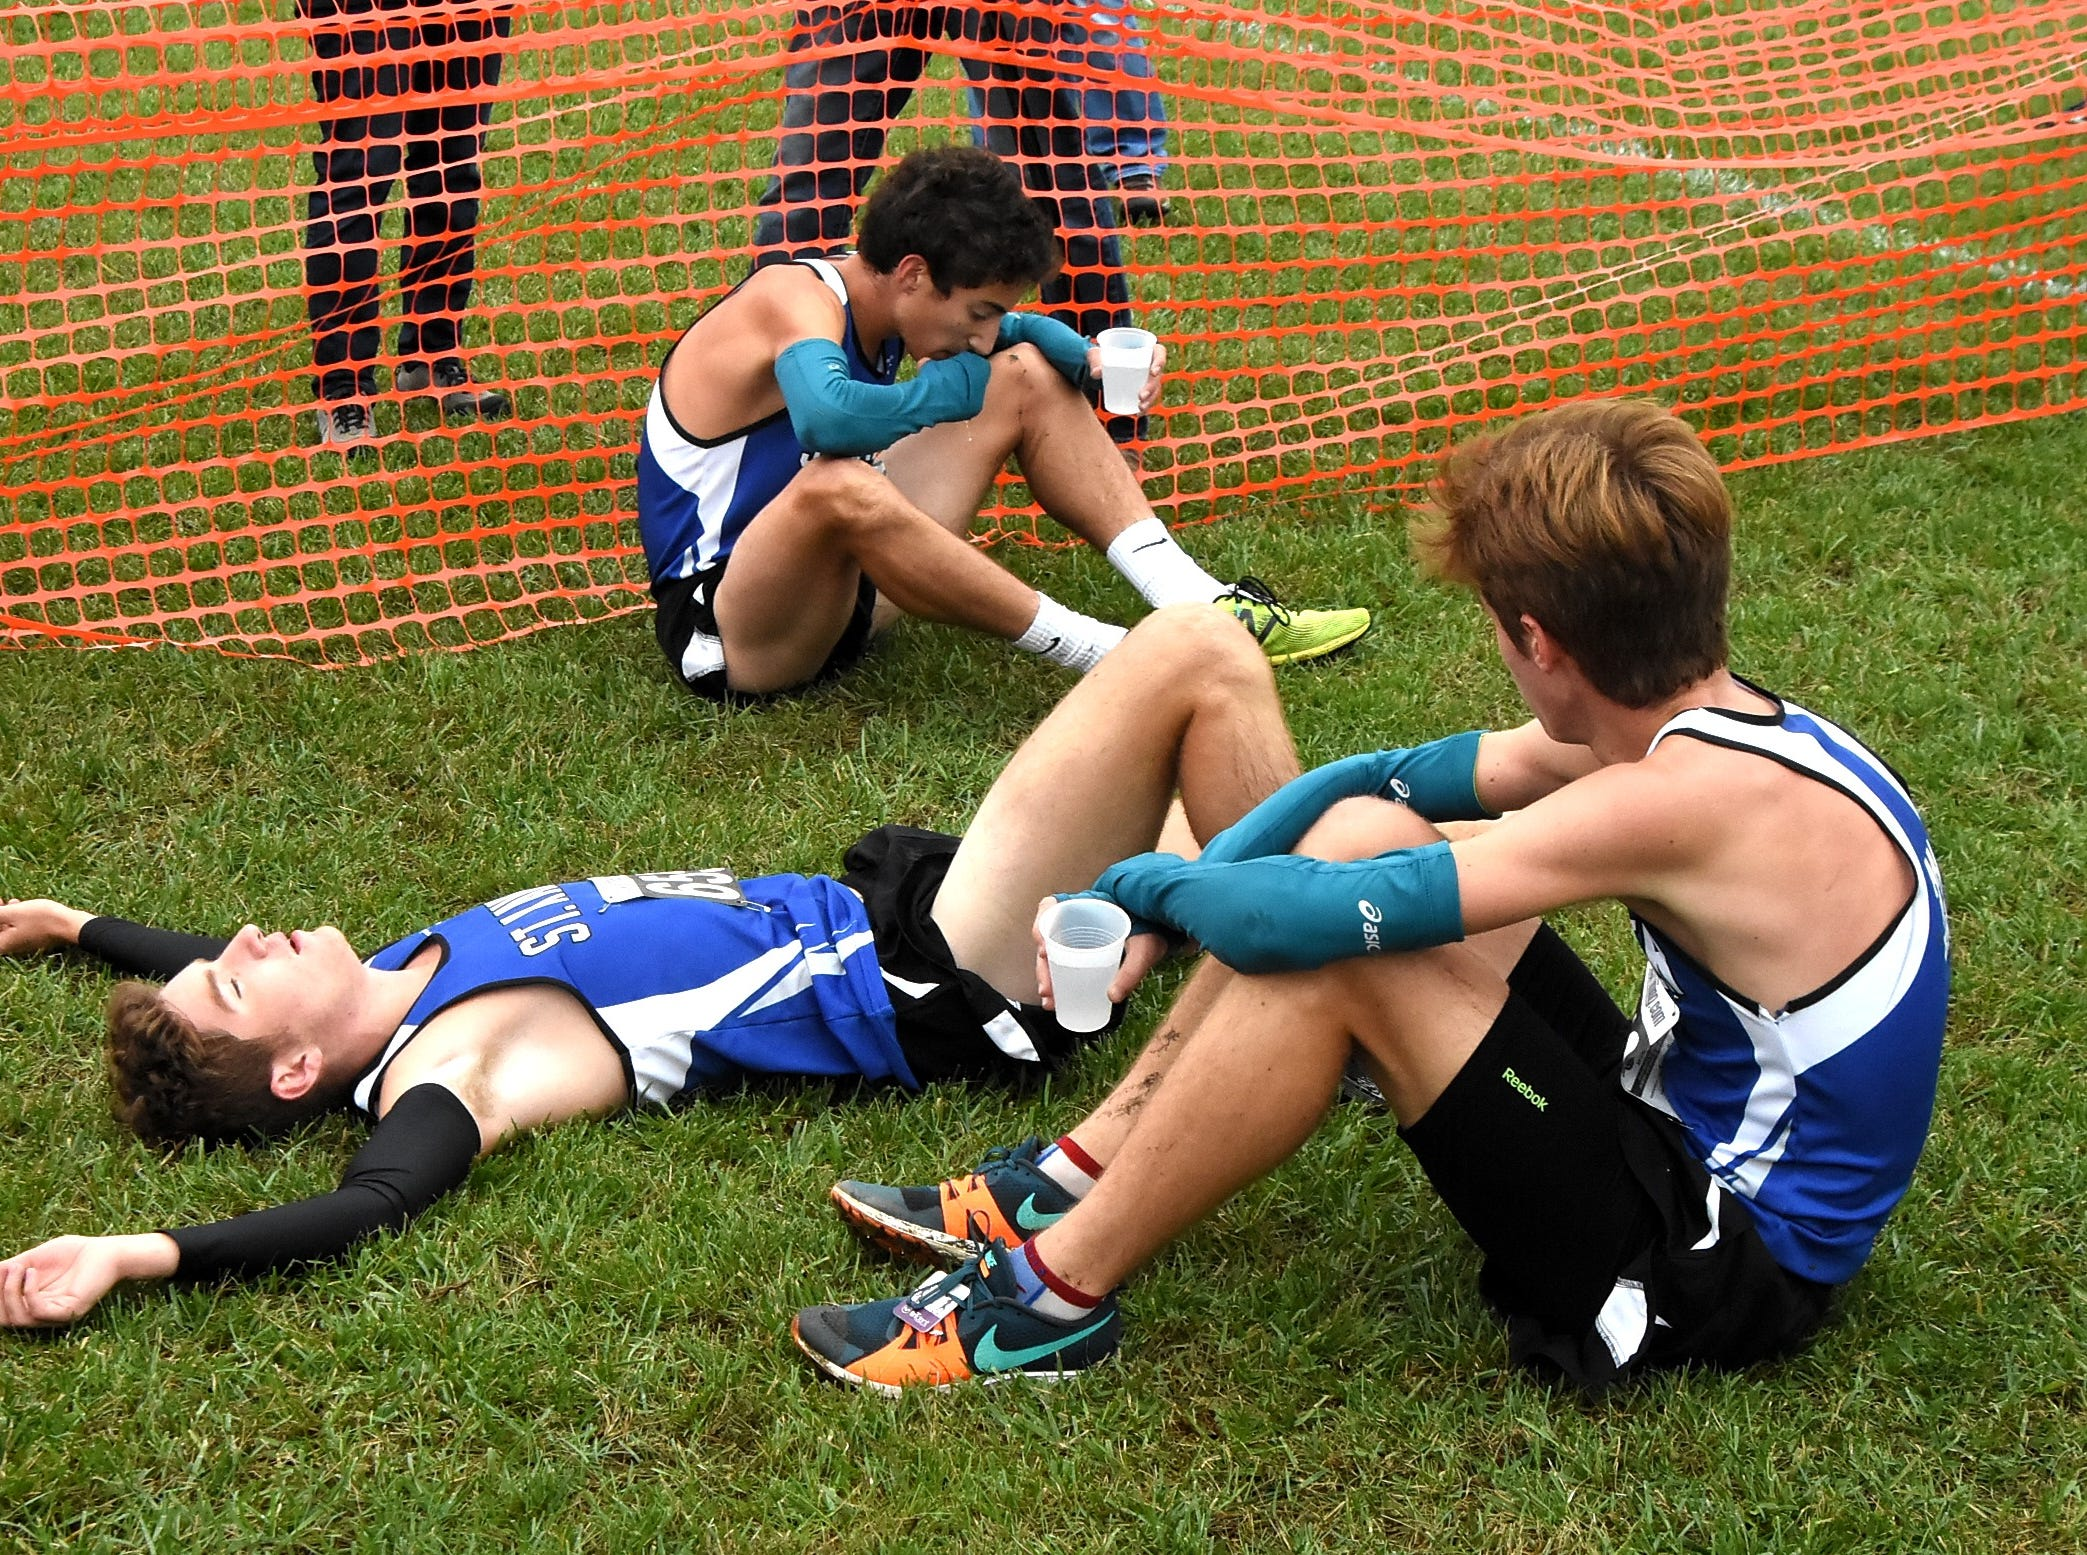 Exhausted runners from St. Xavier took home the team title at the 2018 GCL/GGCL Cross Country Championships, October 13, 2018.